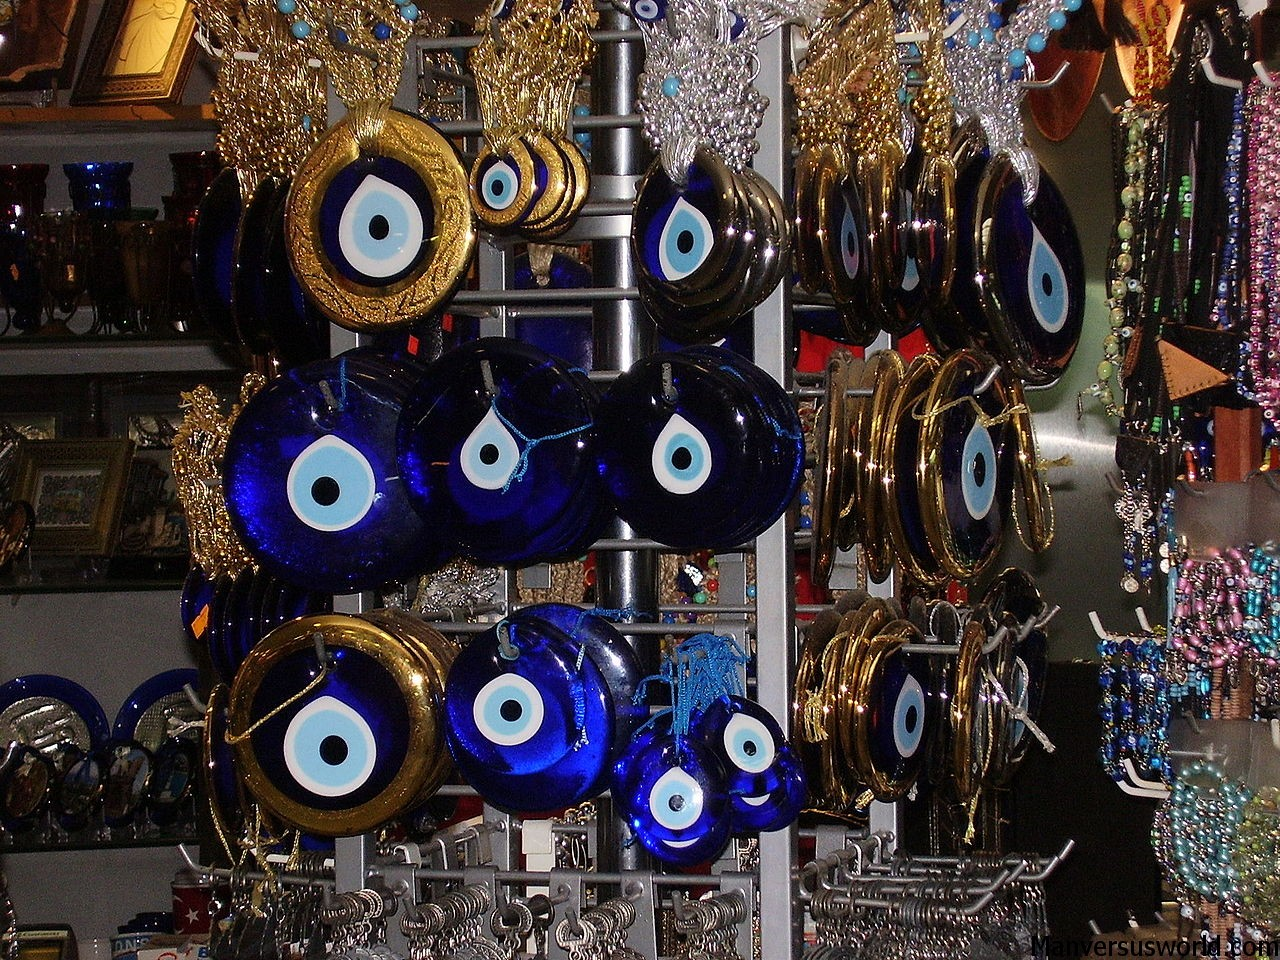 Nazar in a shop in Turkey